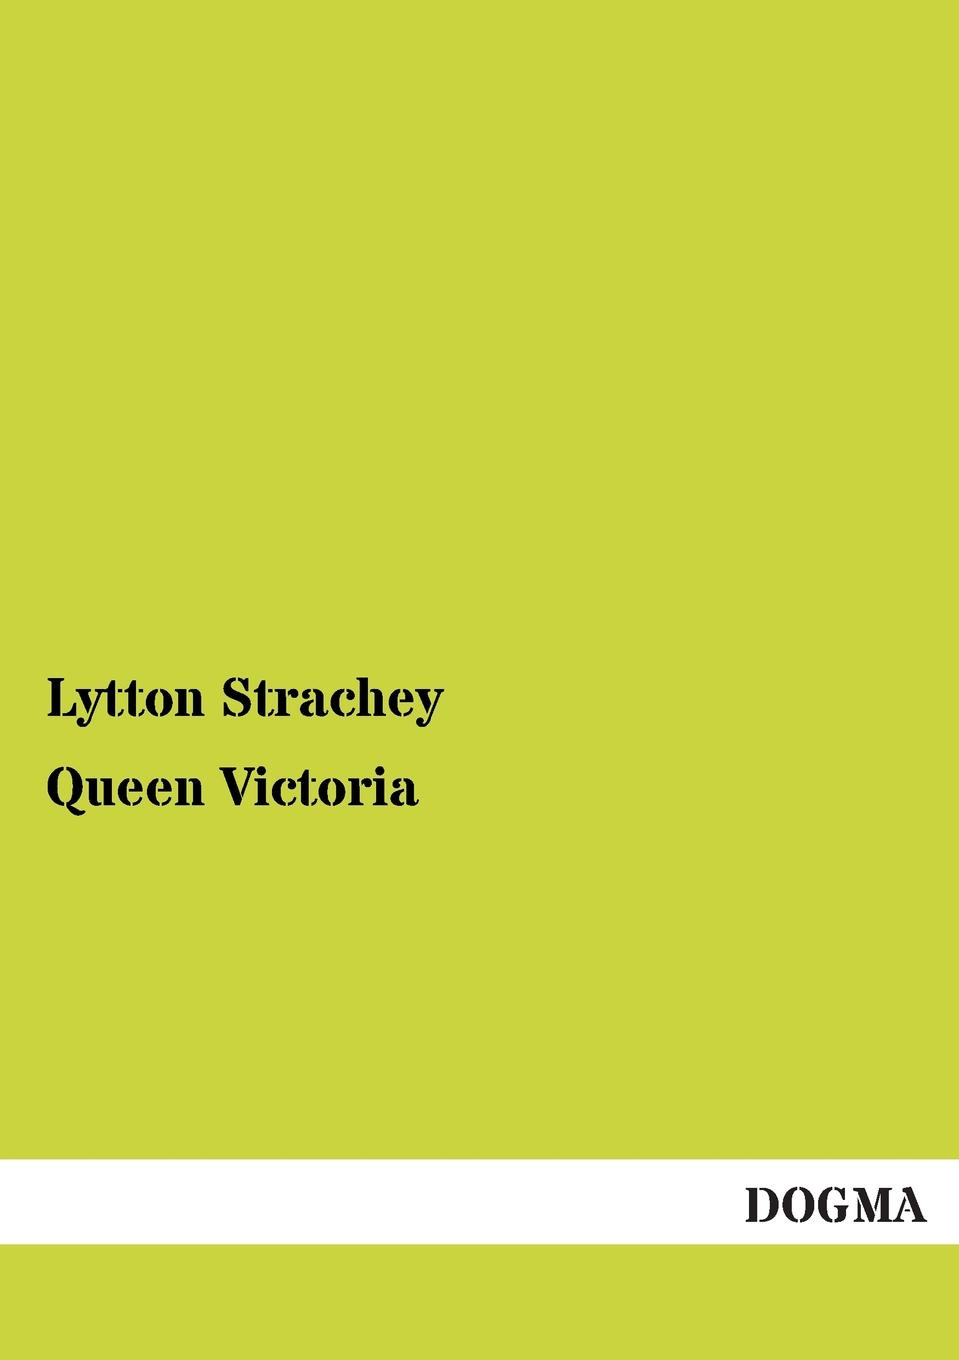 Lytton Strachey Queen Victoria